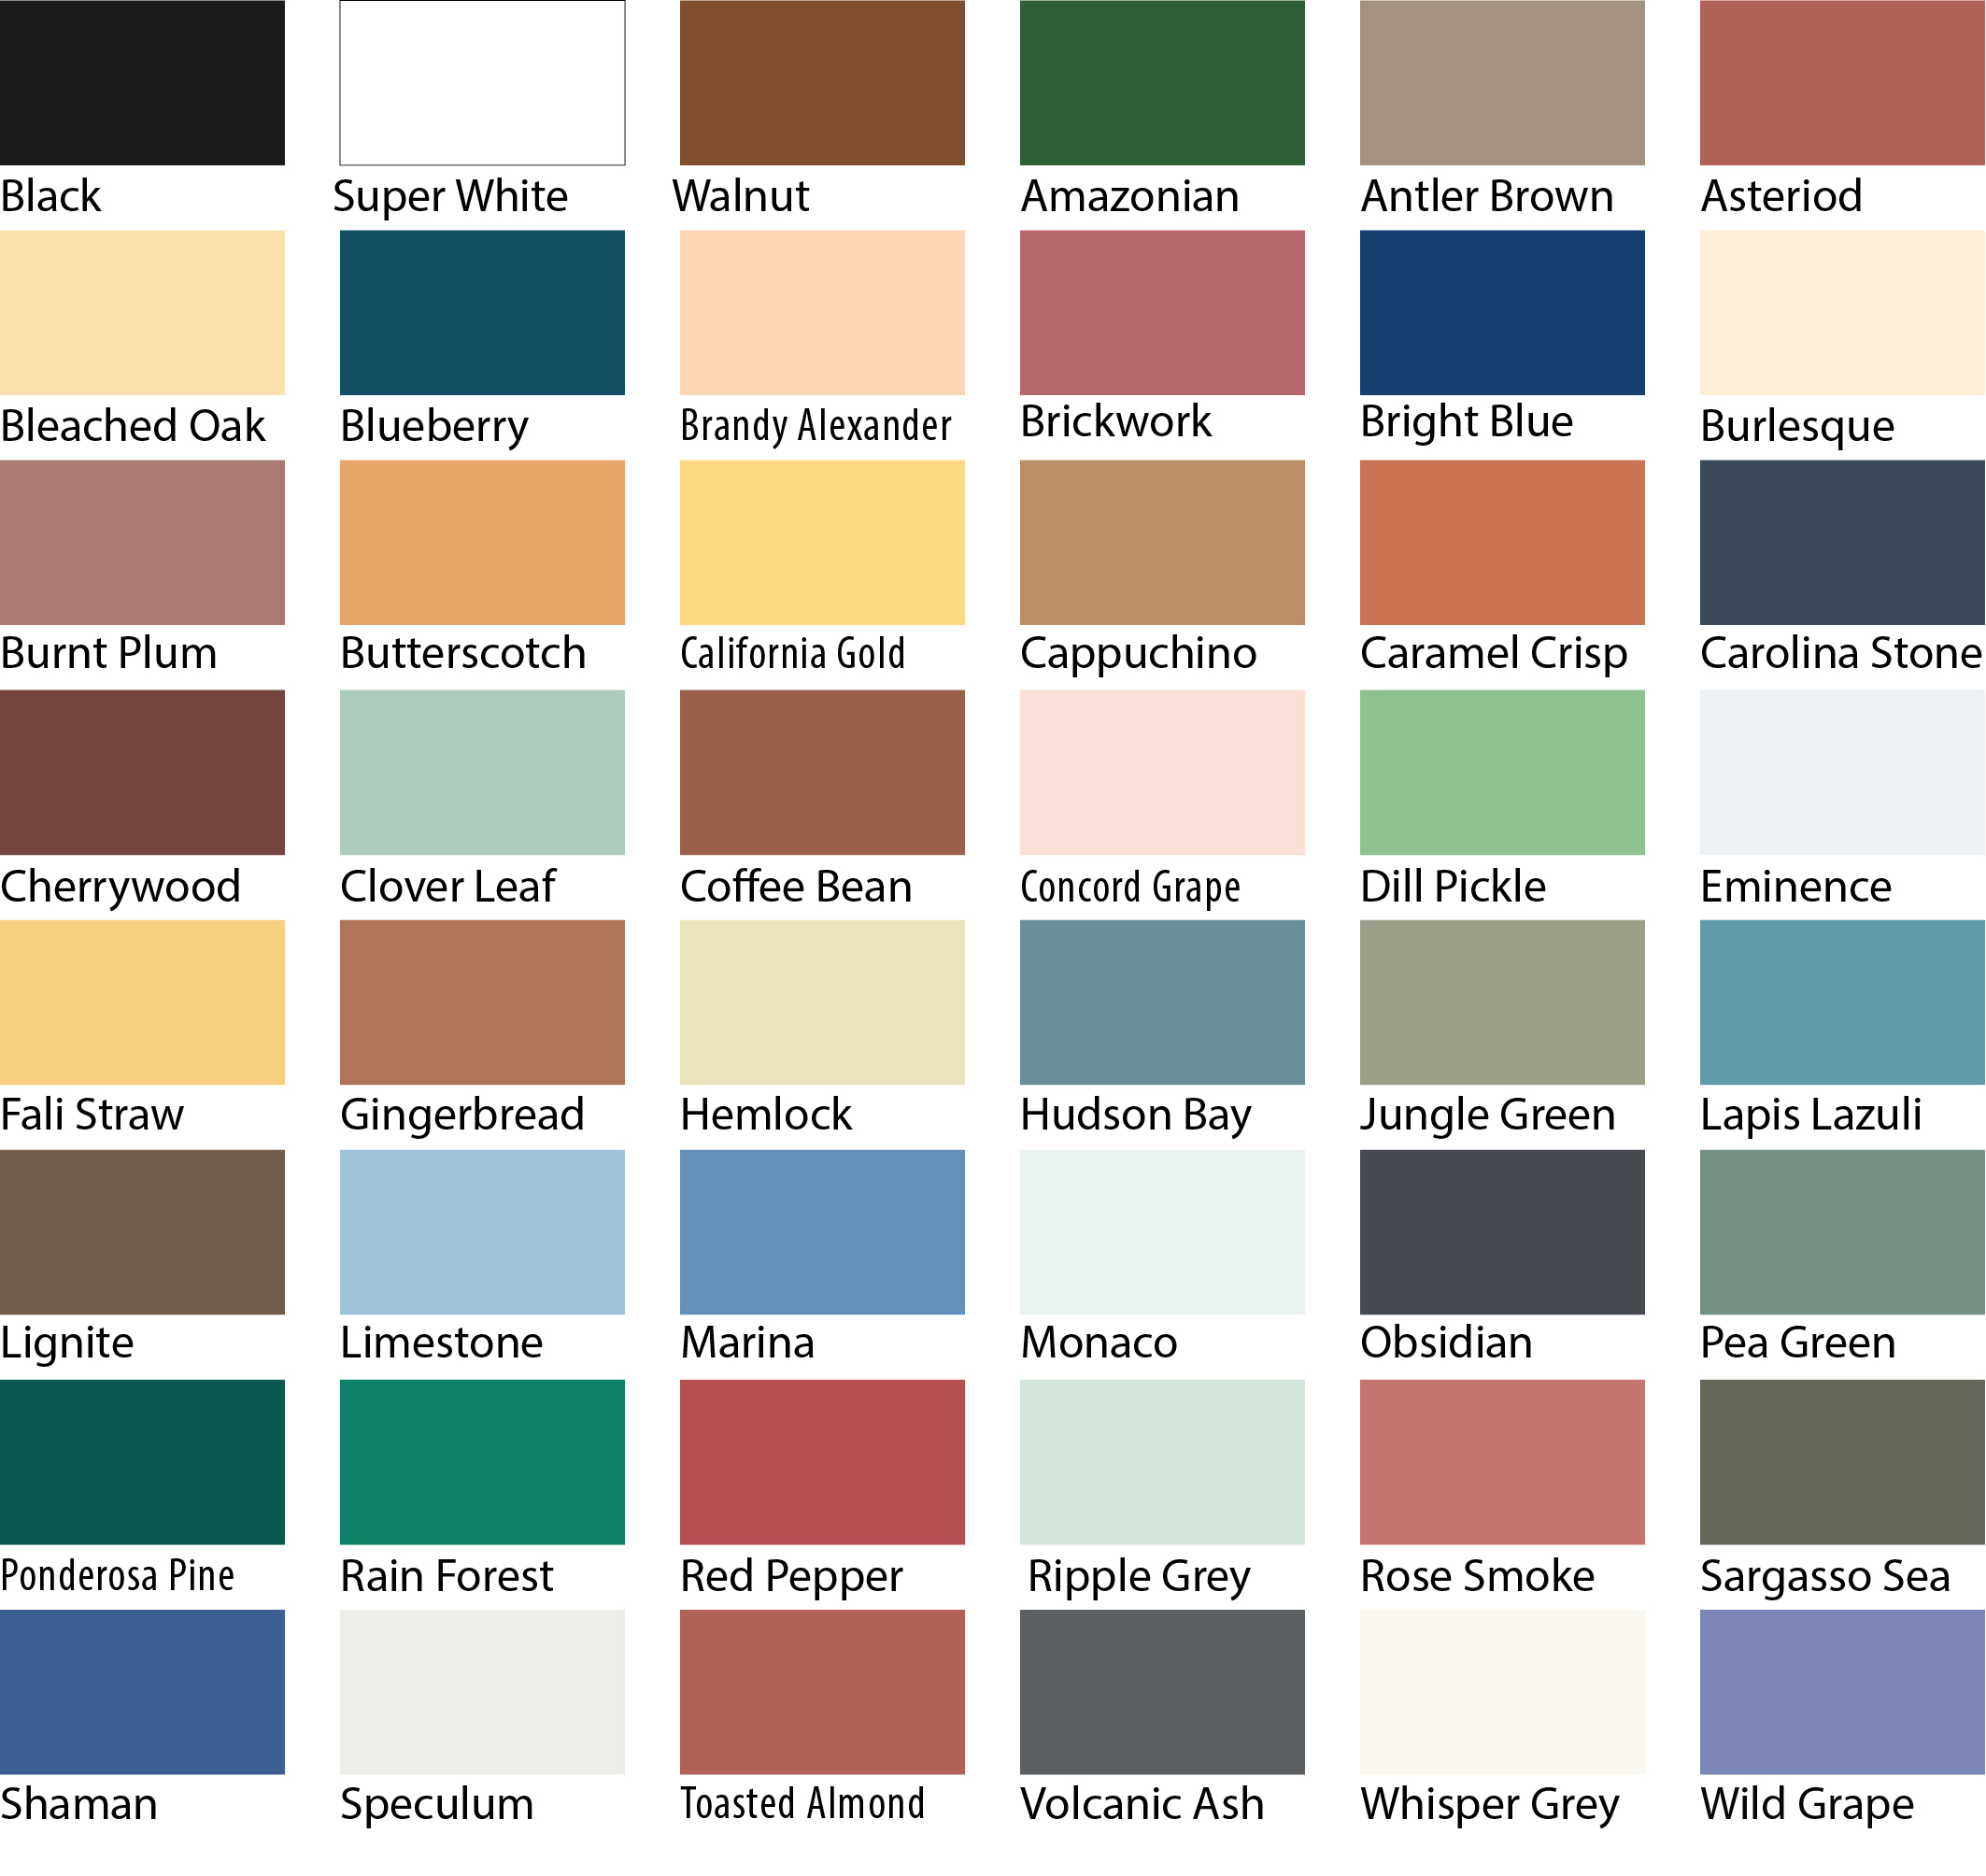 Wood paint colours chart crowdbuild for - Sadolin exterior wood paint image ...